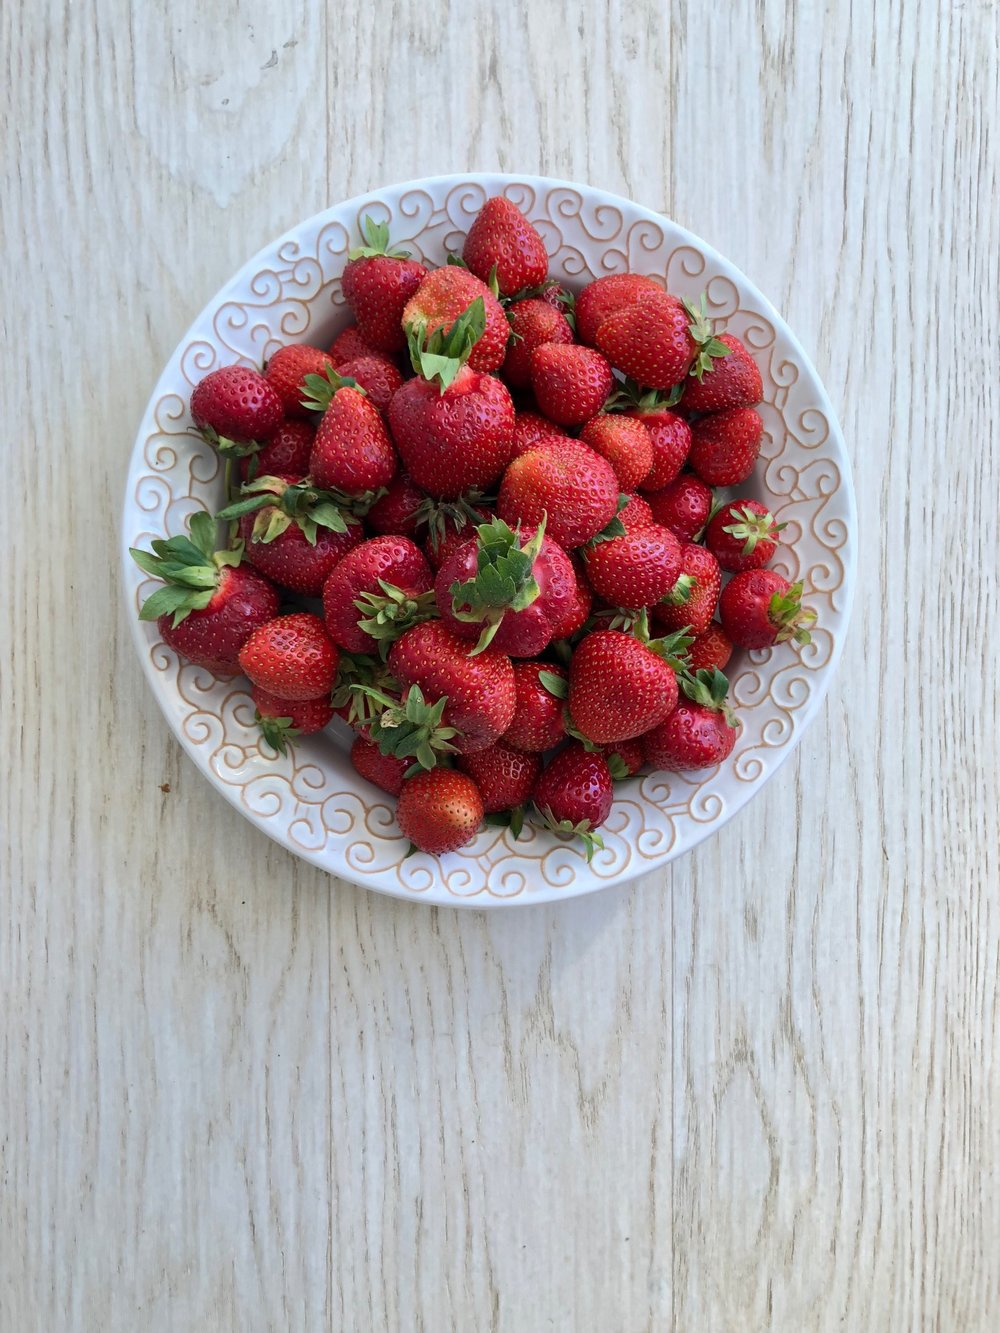 Locally-grown strawberries which are in abundance at this time of year.